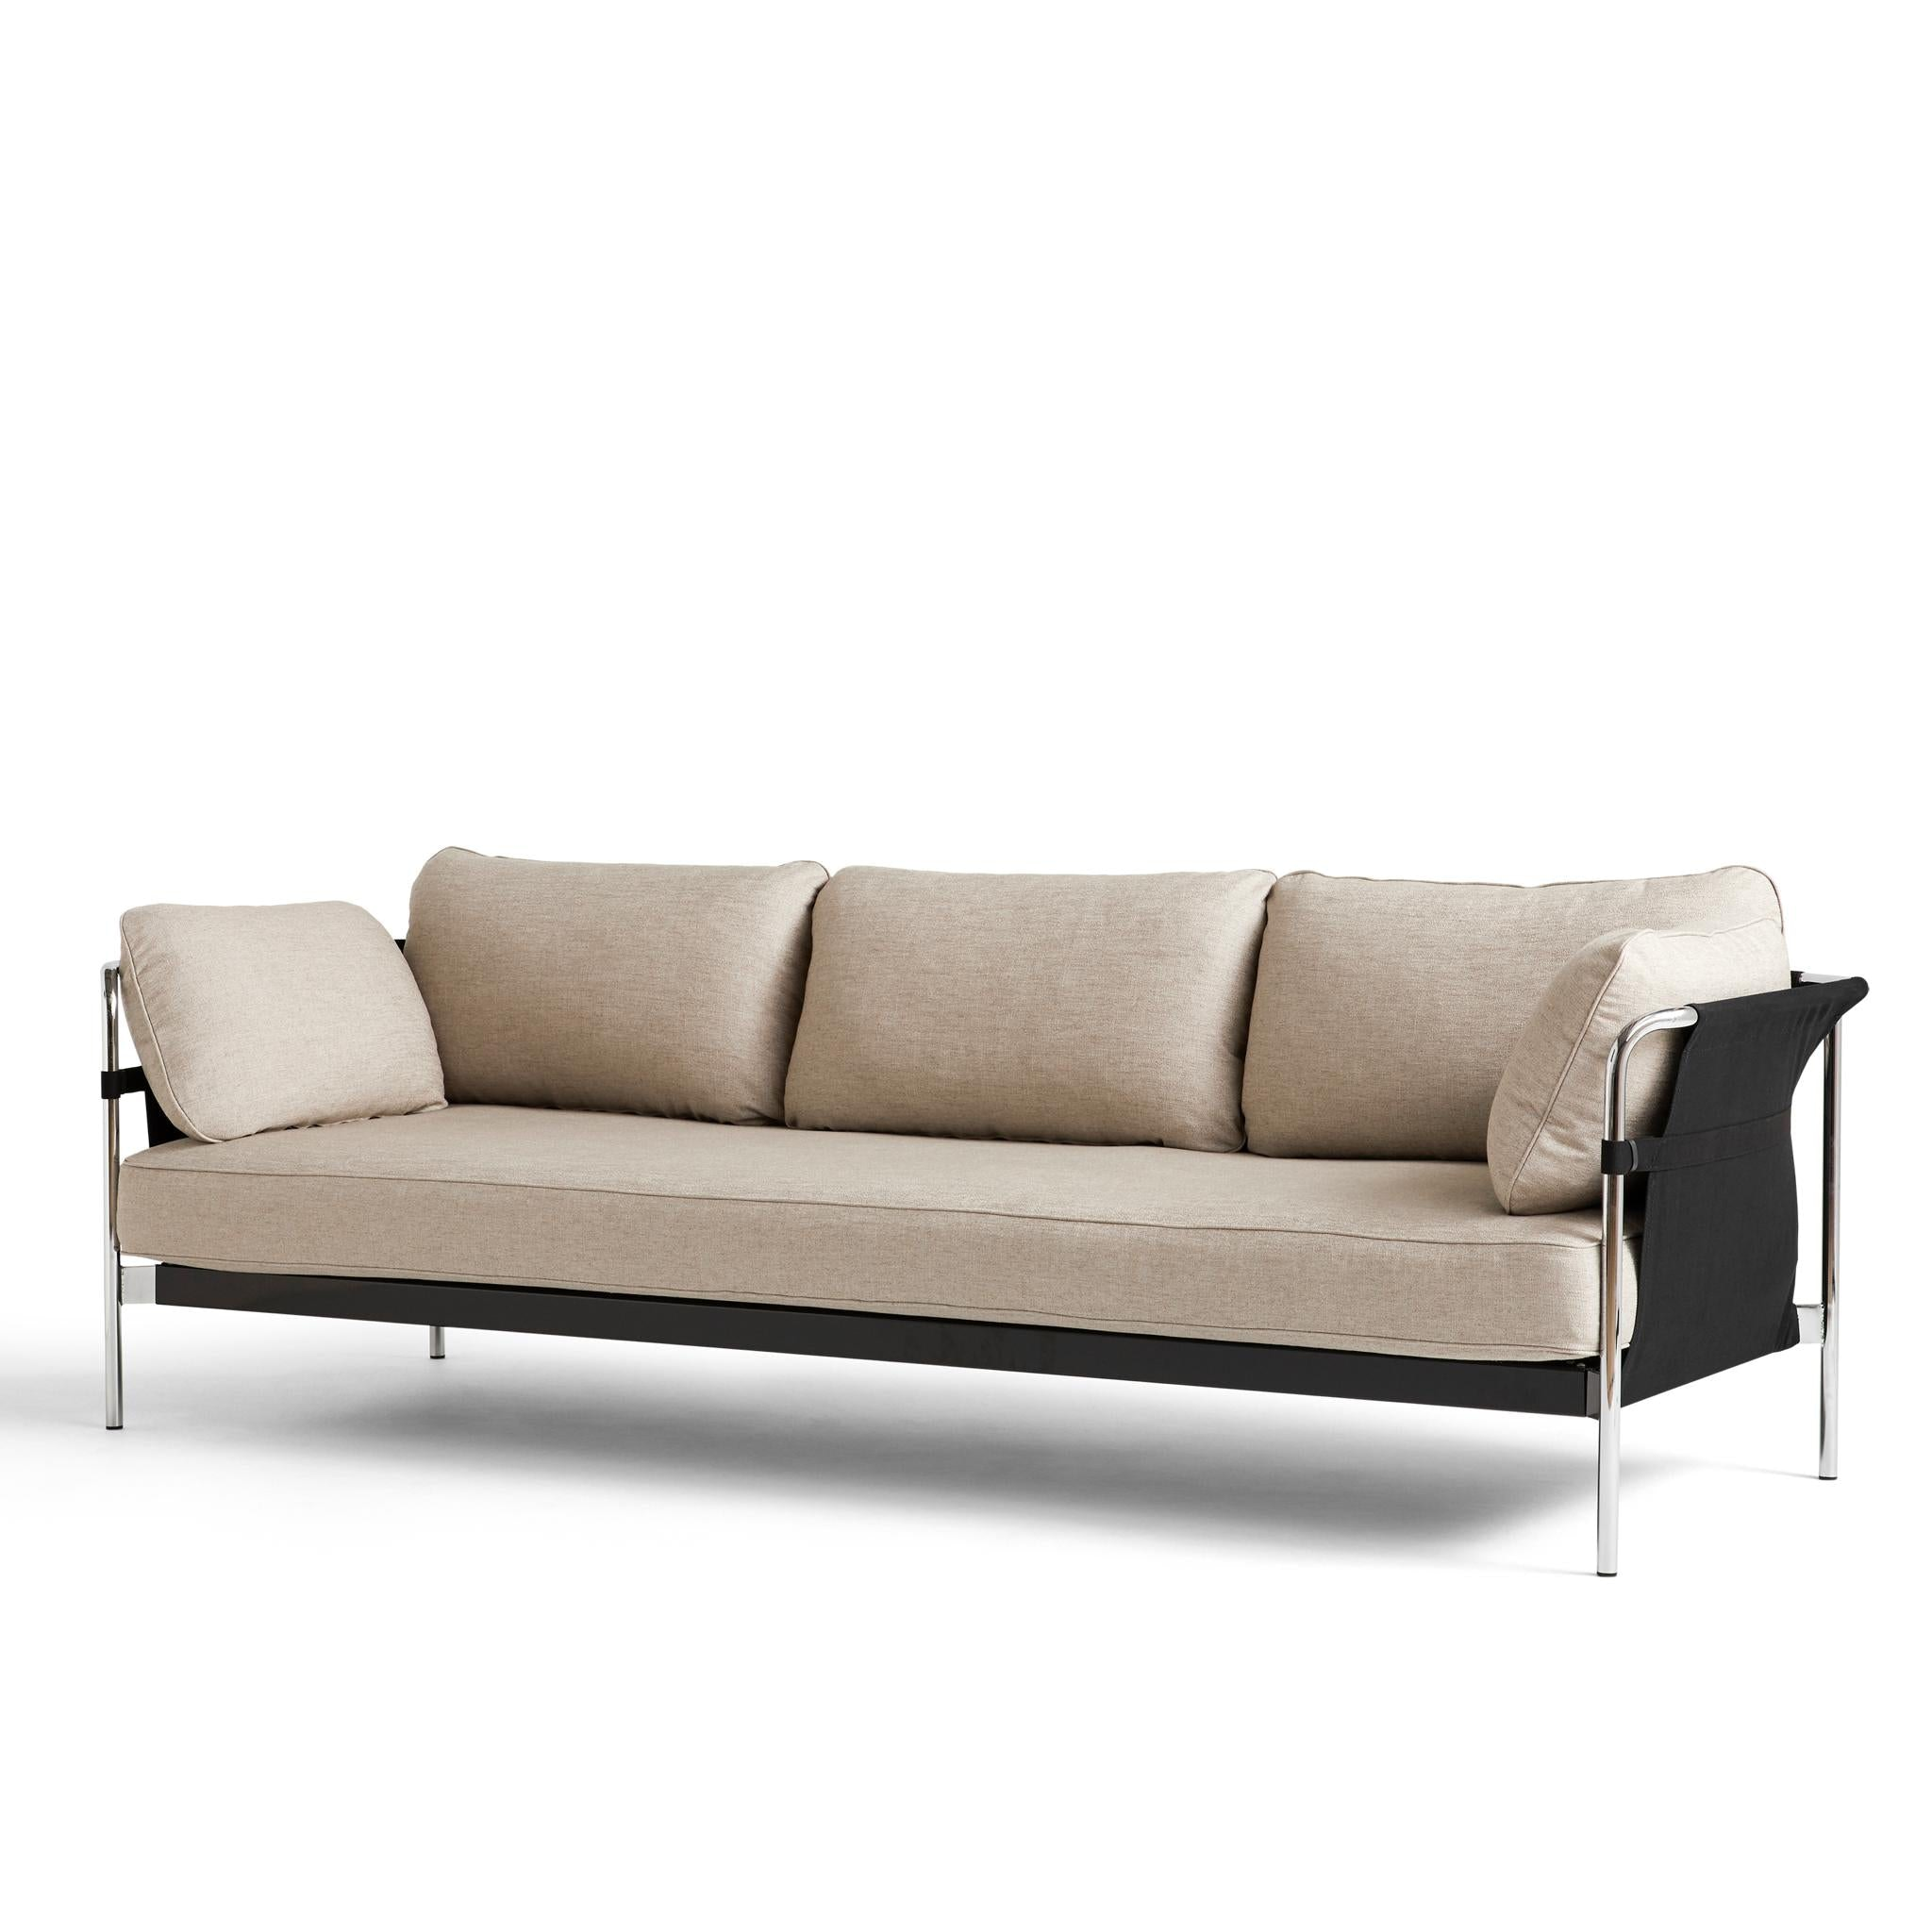 Can 3-Seater Sofa by Hay